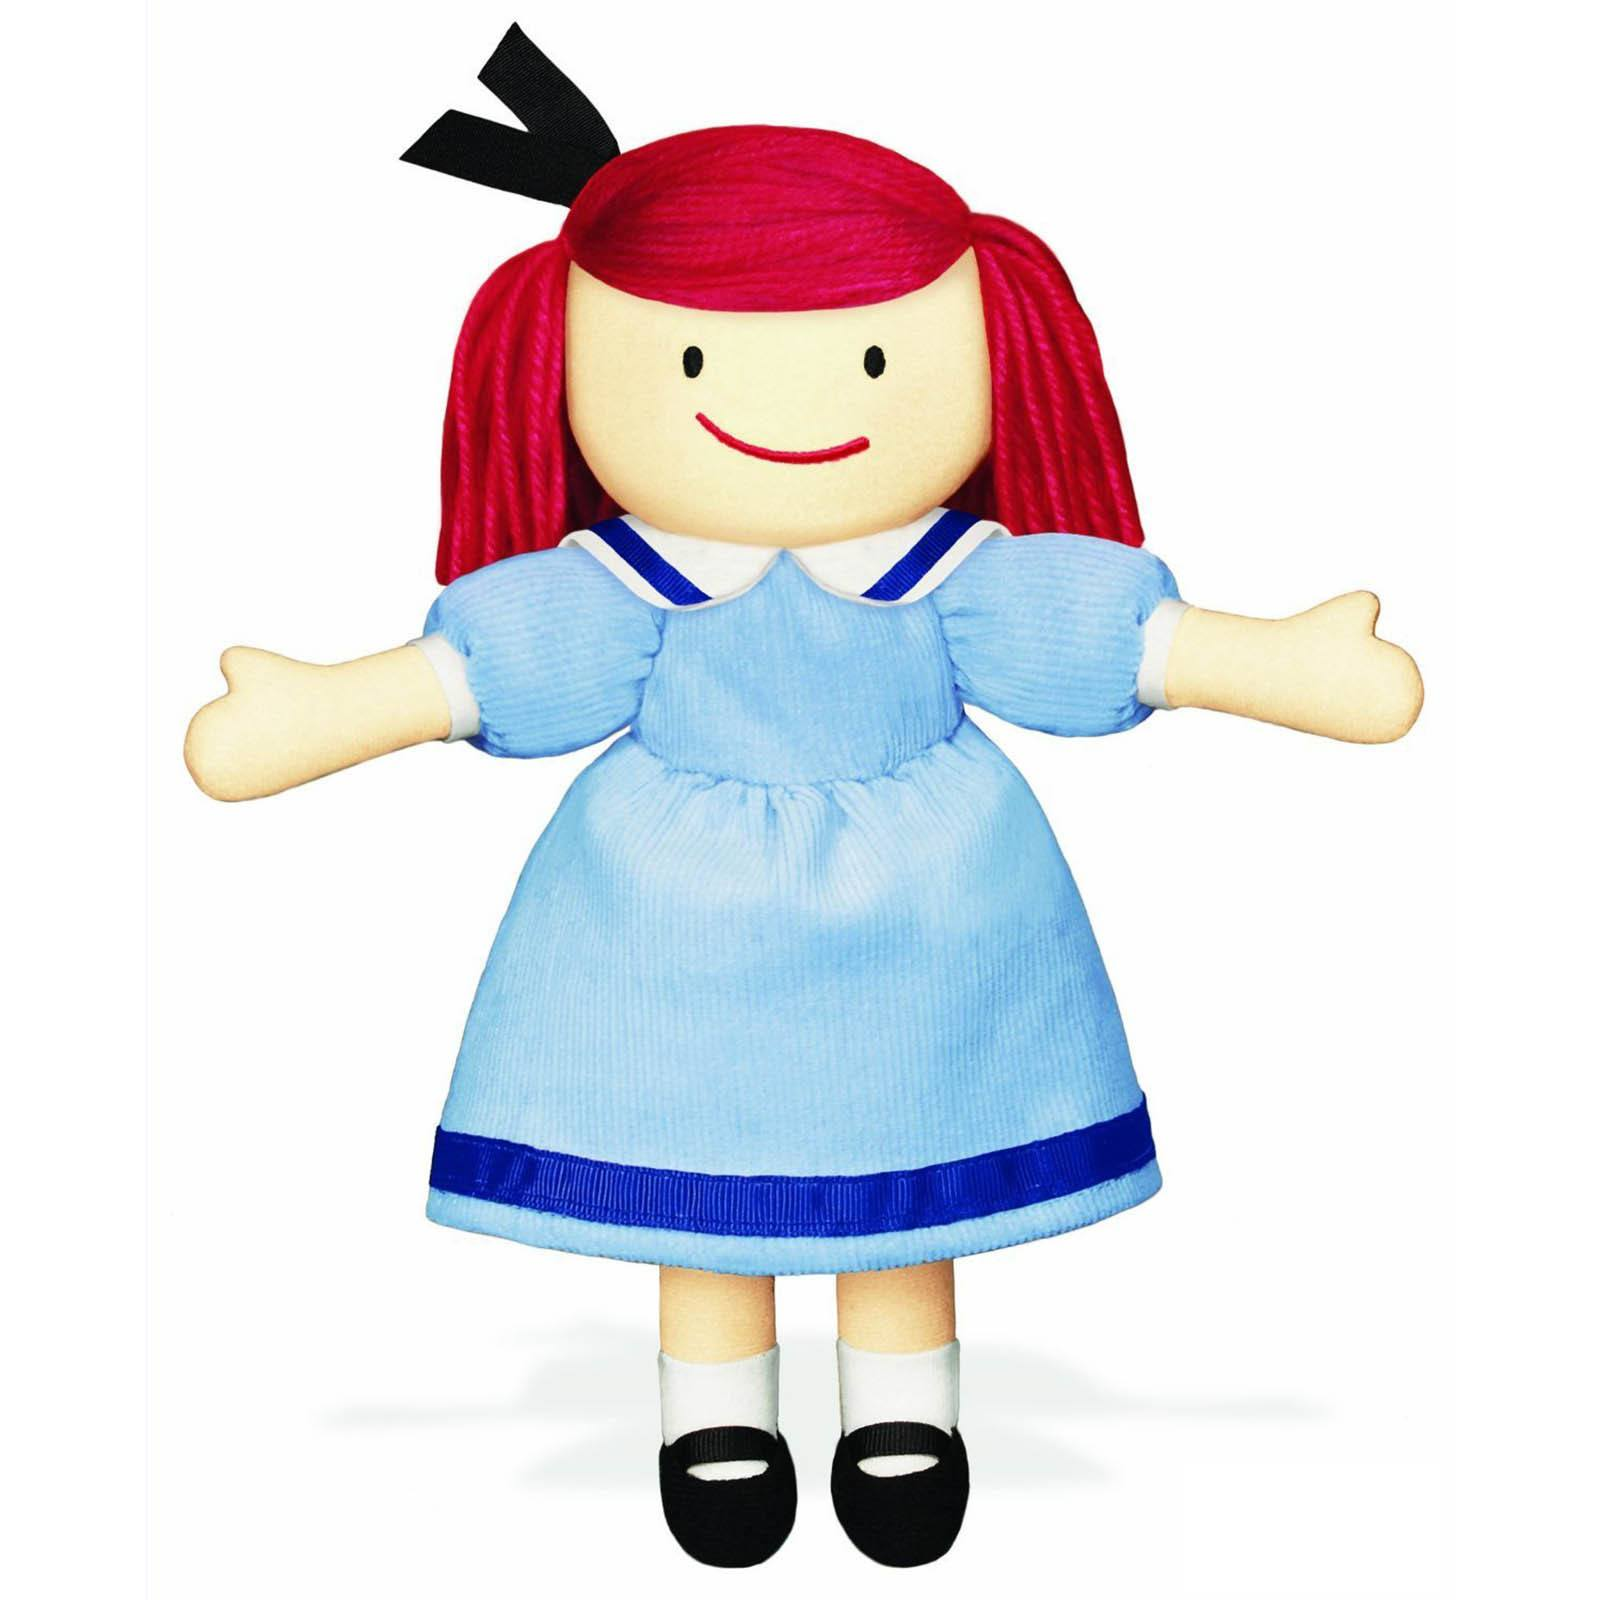 Madeline My Friend 10 inch Plush Figure by